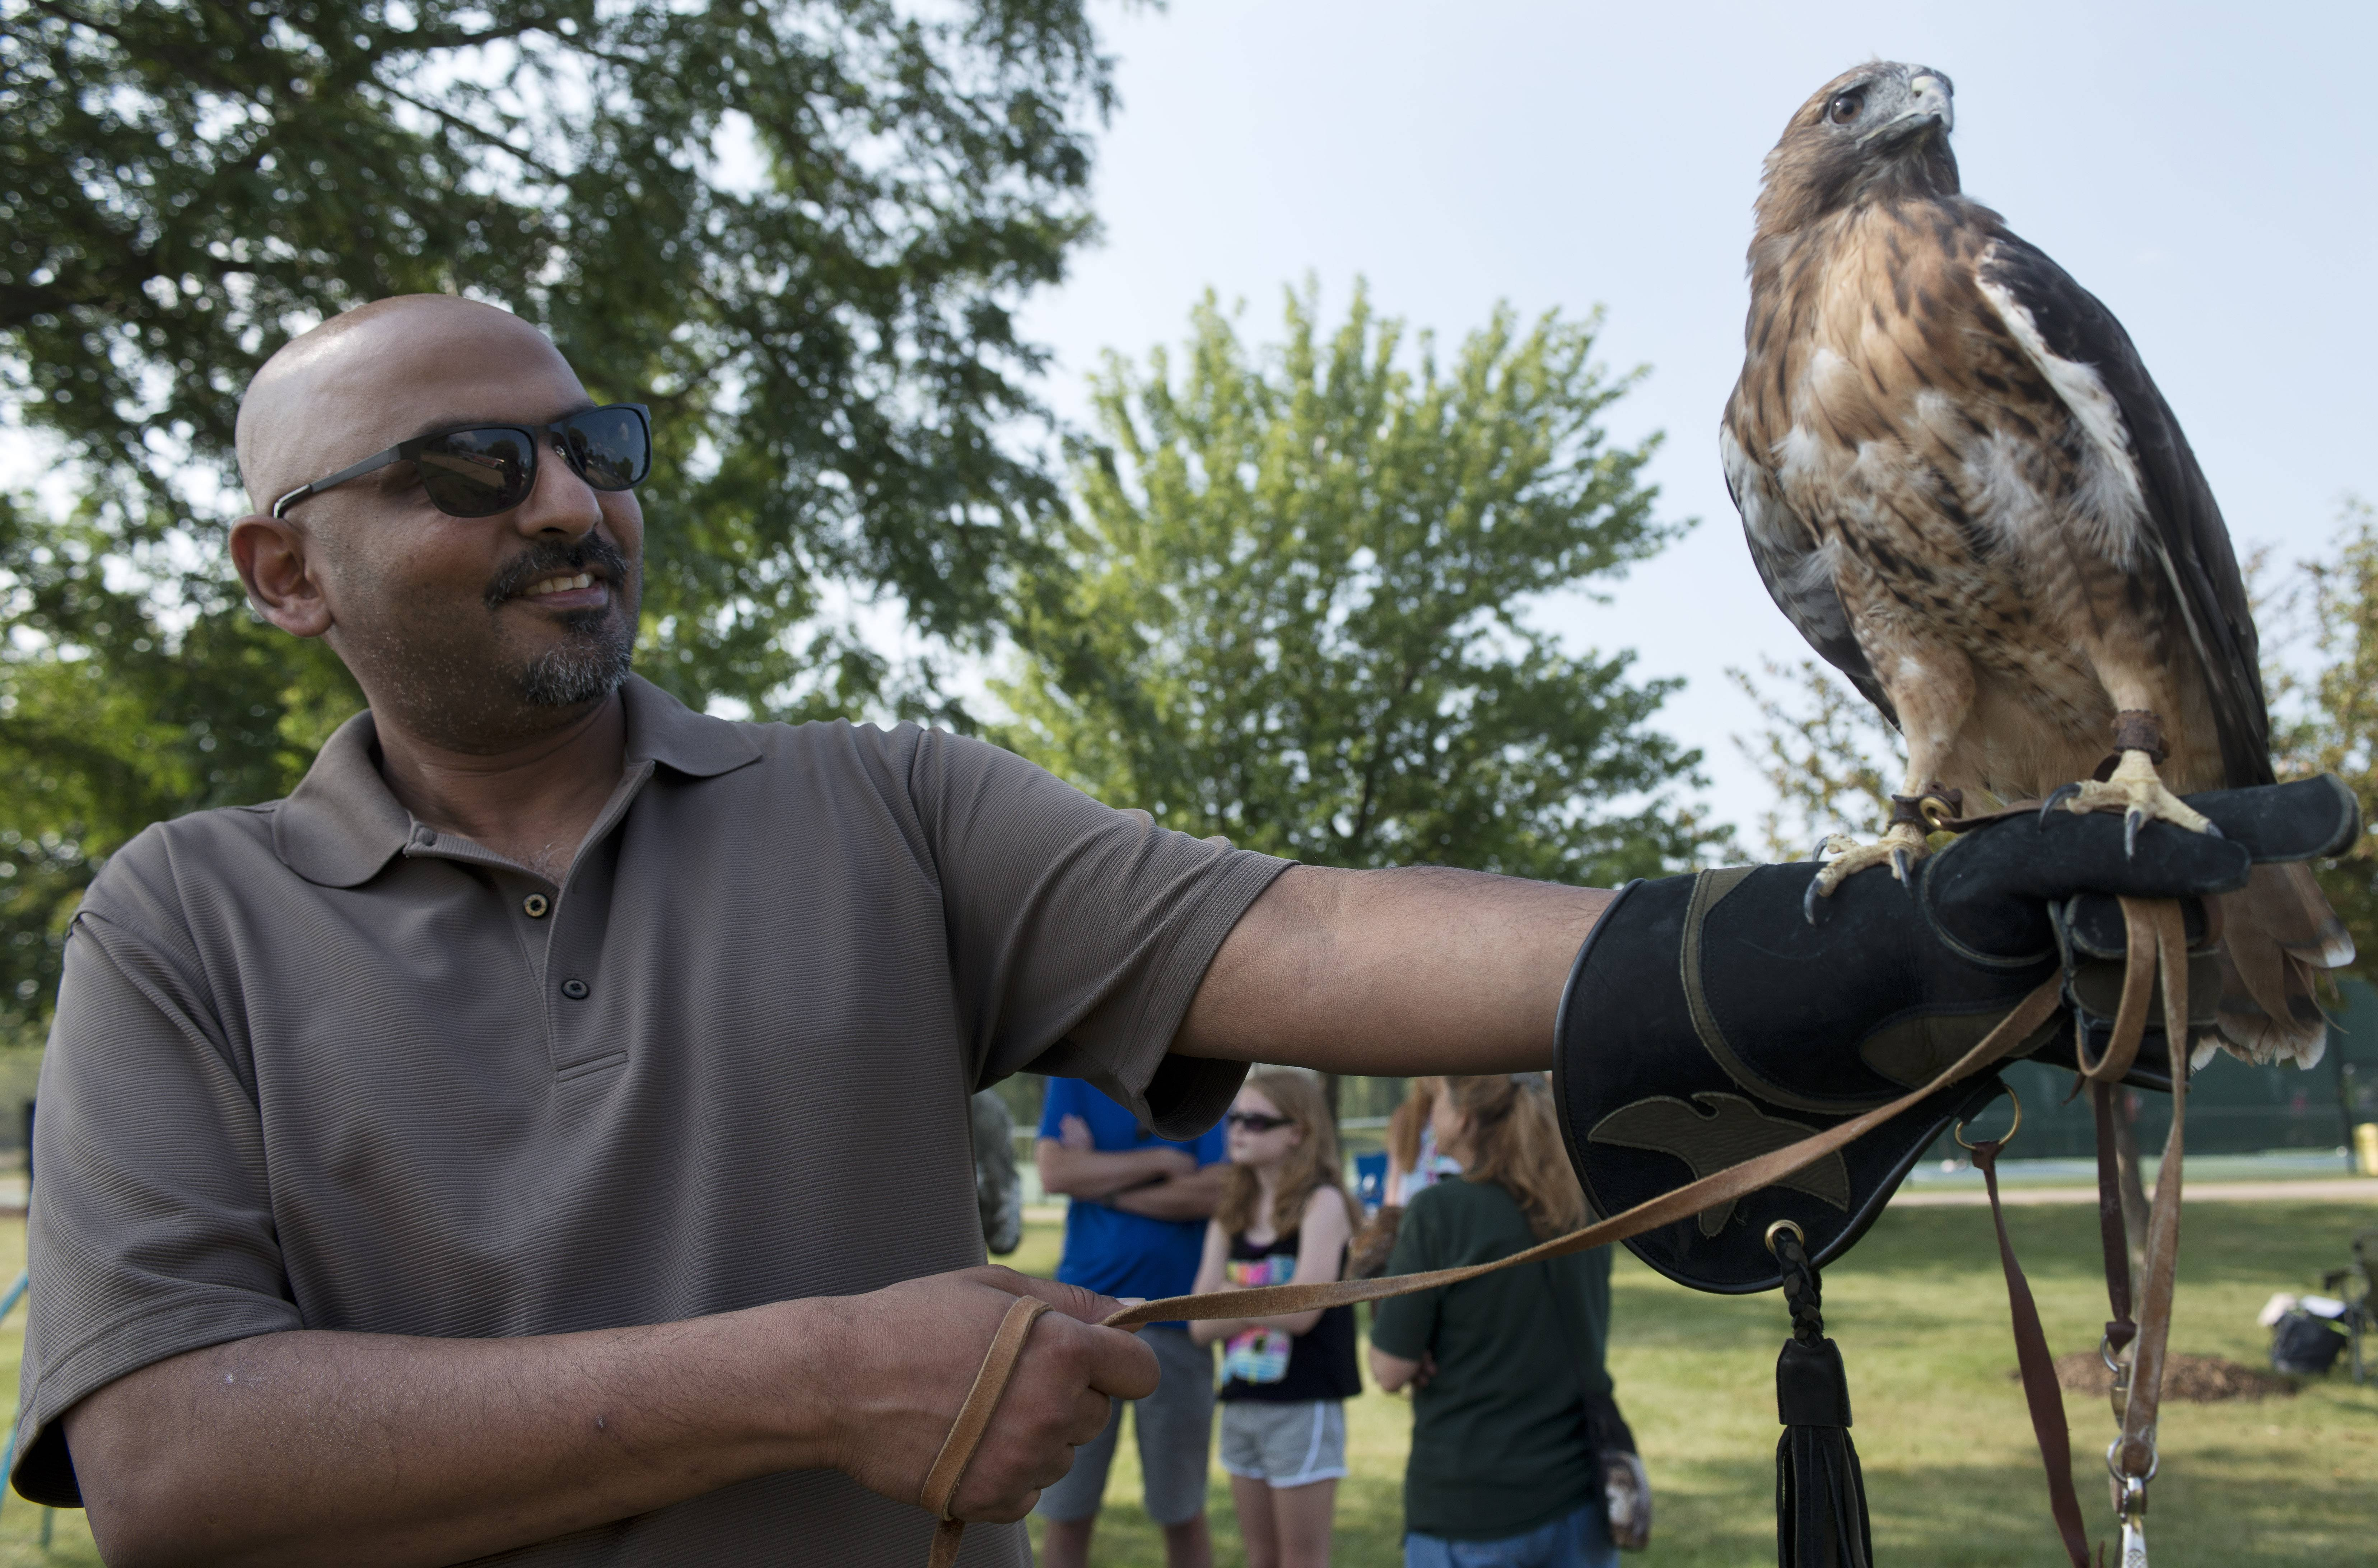 Nabeel Rasheed of the Northern Illinois Raptor Center holds a red-tail hawk Saturday during the Party in the Park at Highpoint Park in Hoffman Estates.